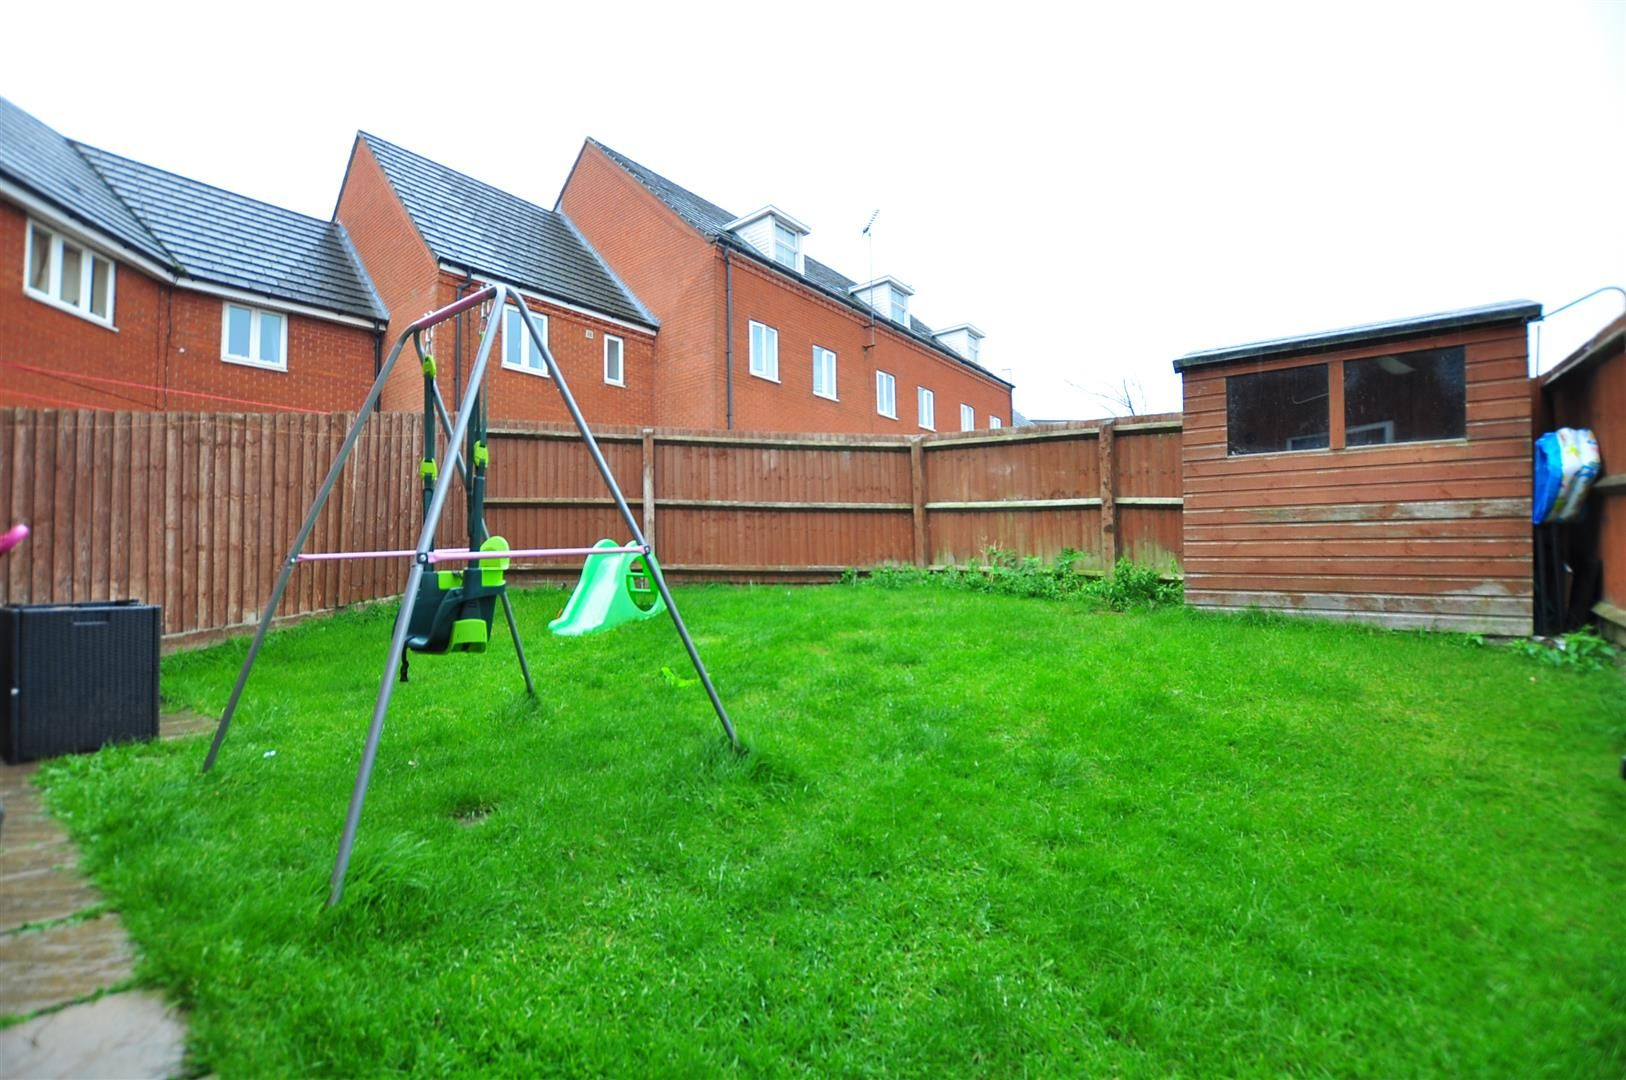 3 bed end-of-terrace for sale  - Property Image 15